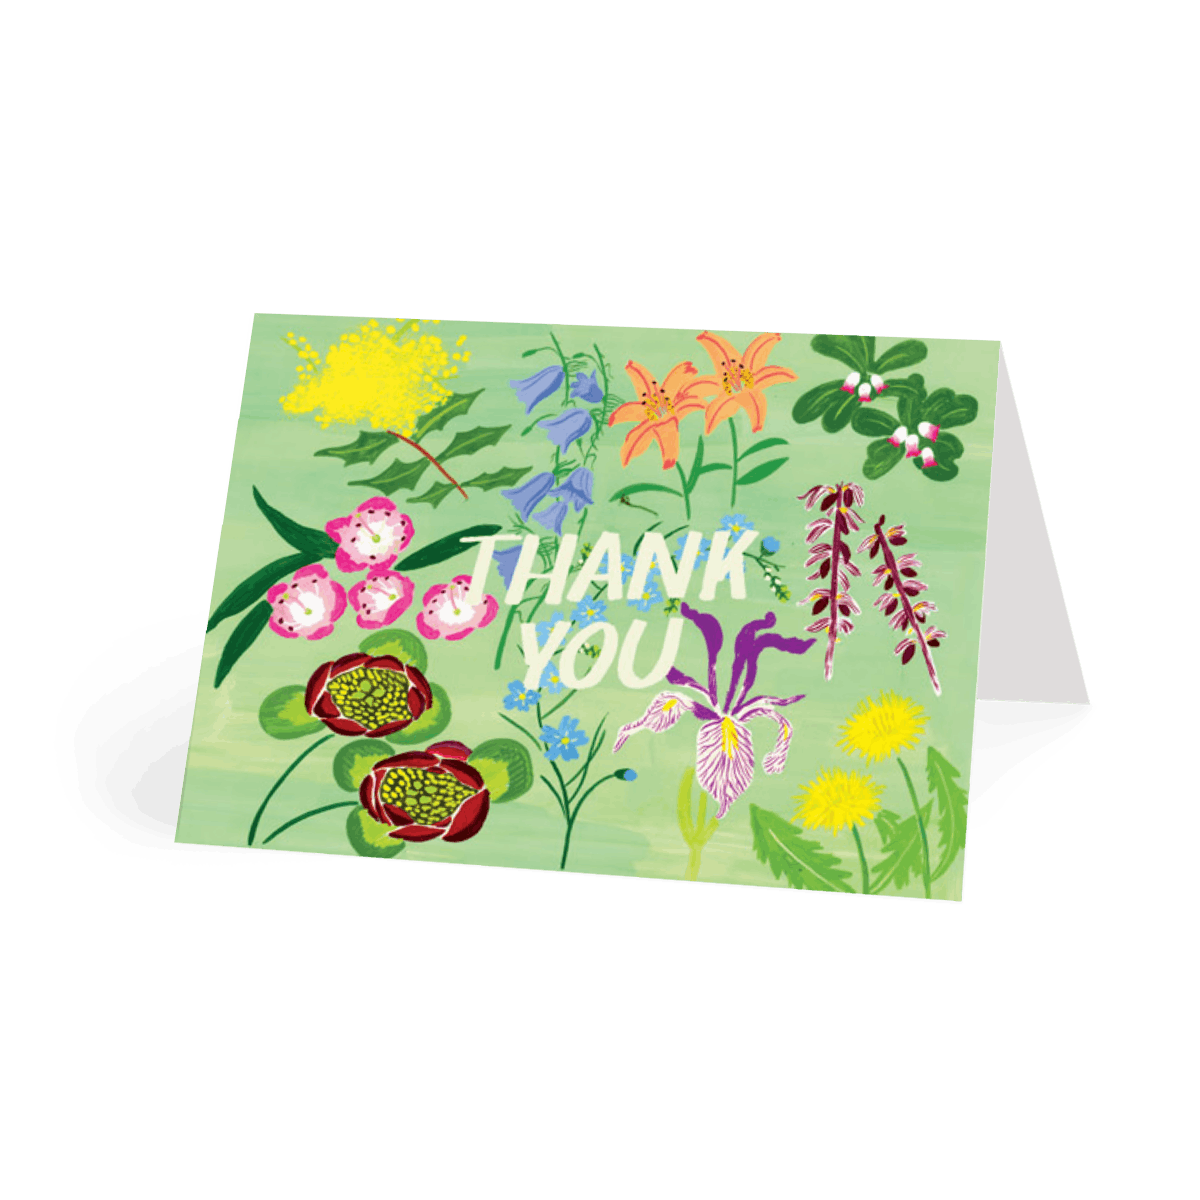 Https%3a%2f%2fwww.papier.com%2fproduct image%2f33629%2f14%2fmeadow flower thank you 8398 front 1517588966.png?ixlib=rb 1.1